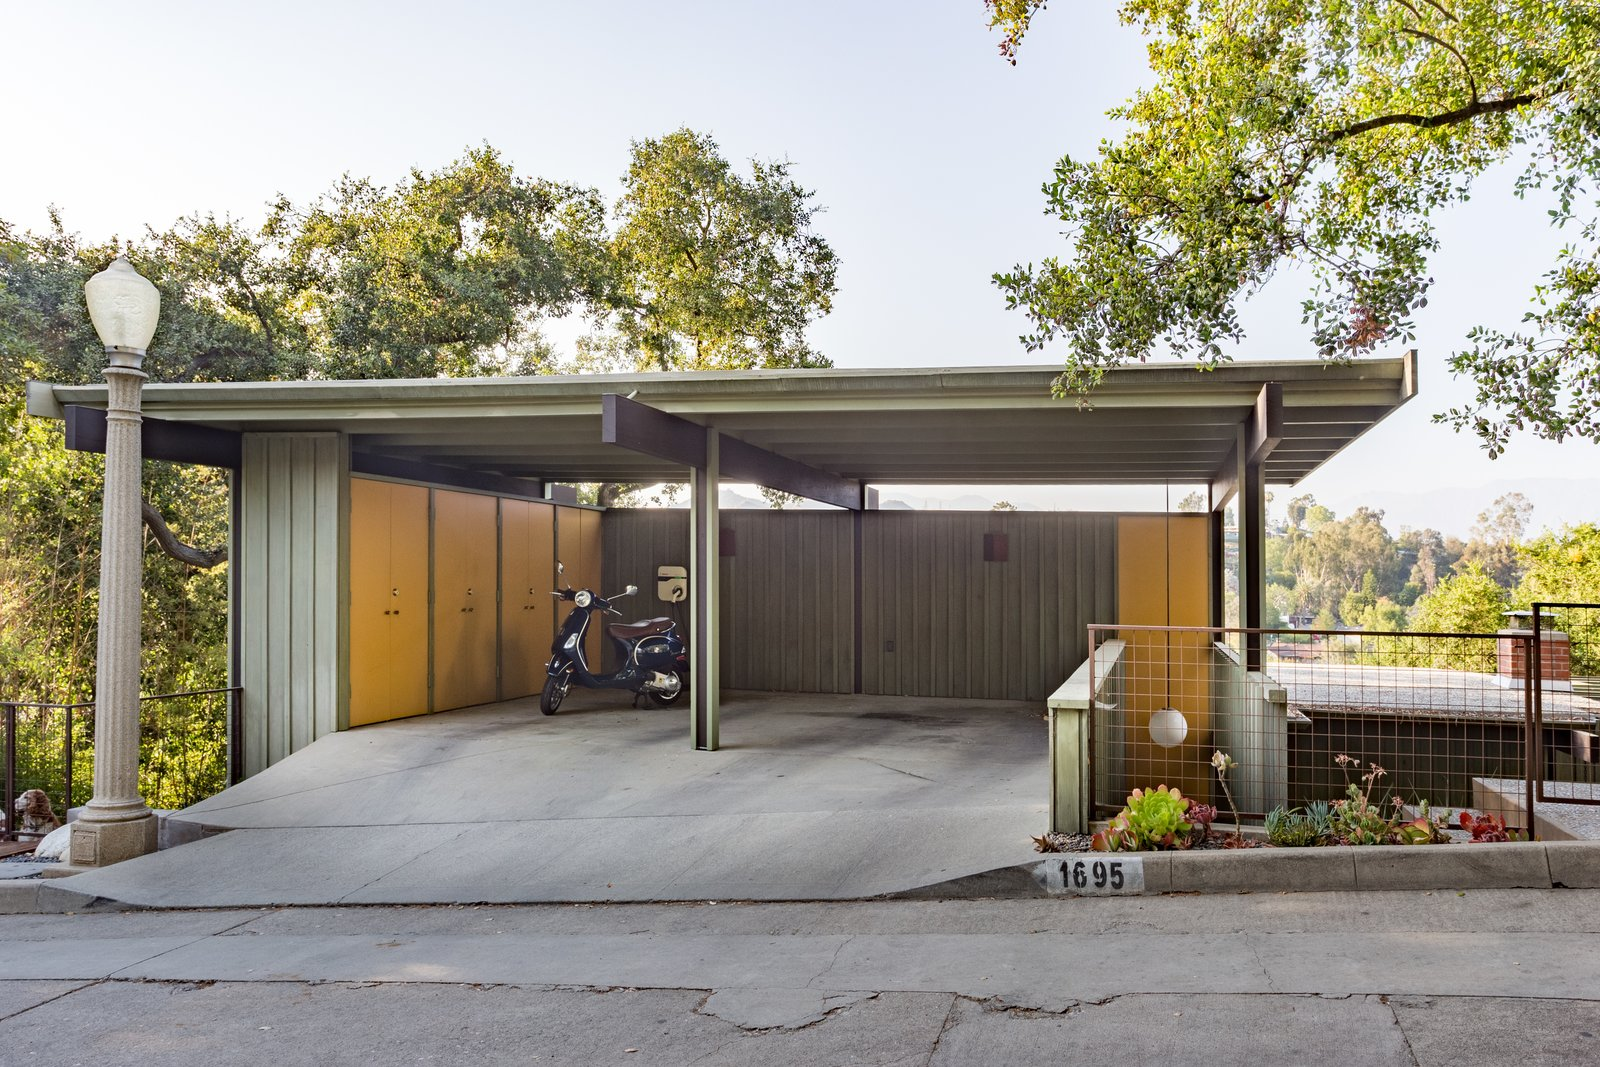 Garage and Detached Garage Room Type The pop of orange as an accent color is picked up in the carport.  Photos from Mad Men Producer Puts His Pasadena Midcentury Up For Auction Starting at $1.7M